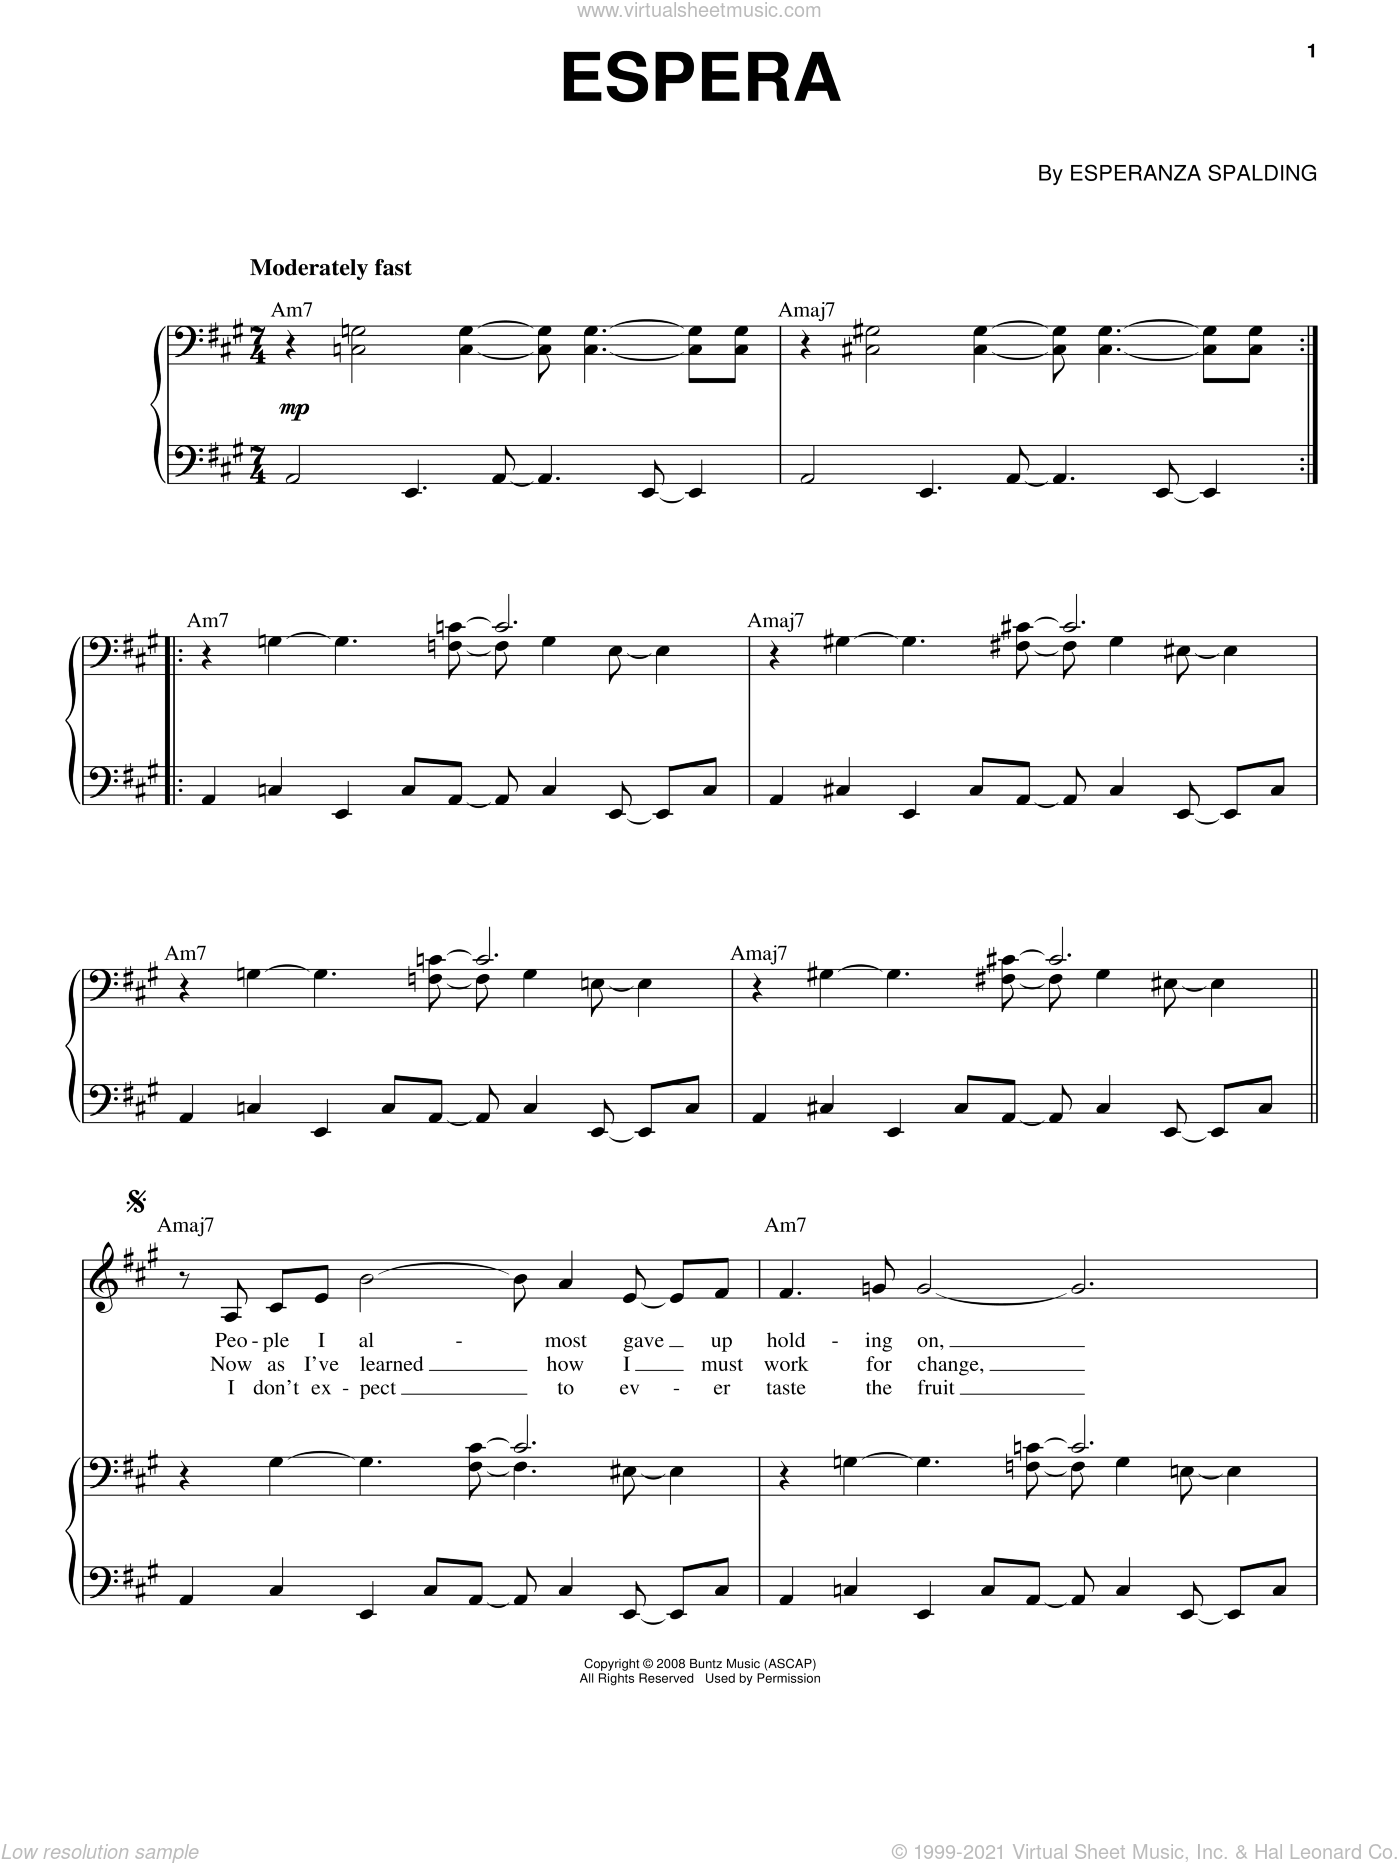 Espera sheet music for voice and piano by Esperanza Spalding. Score Image Preview.